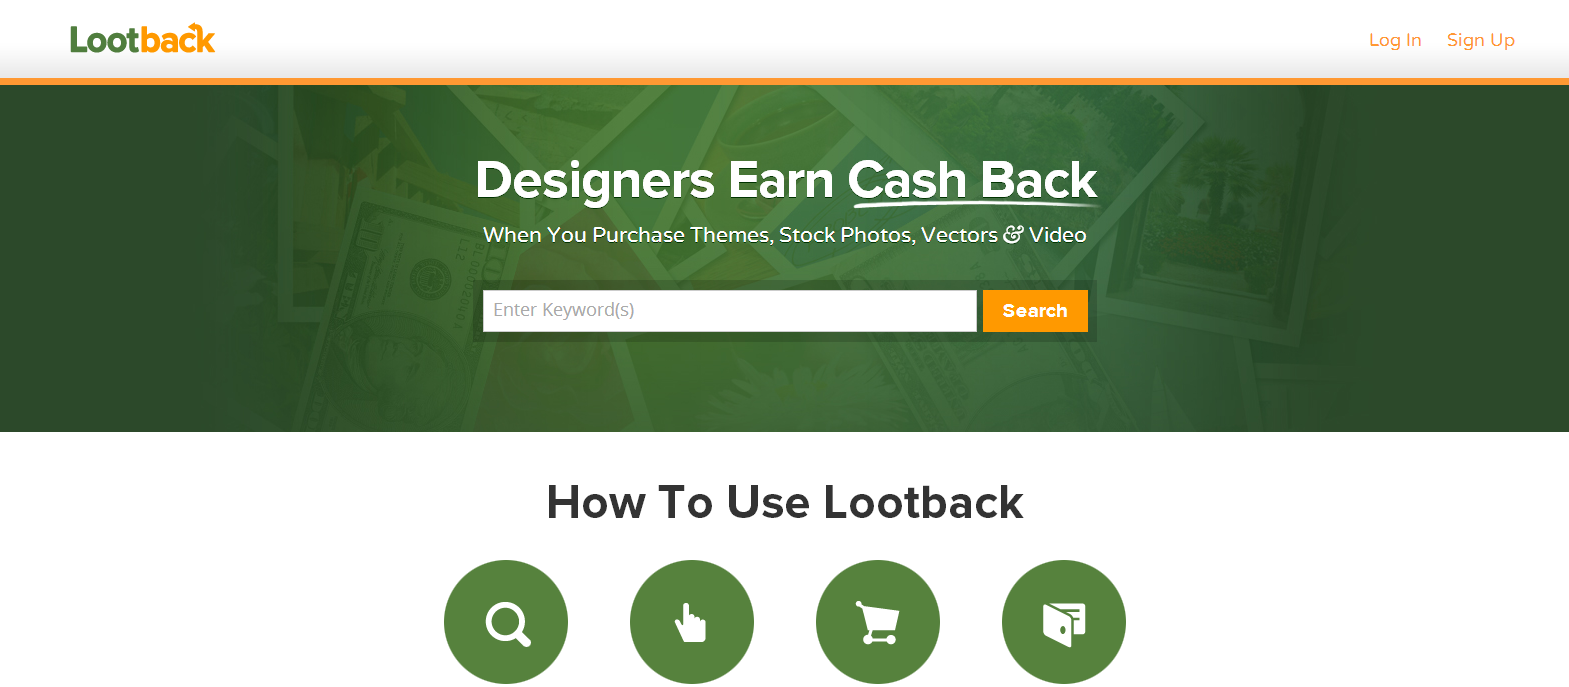 Lootback Cash Back for Designers Developers